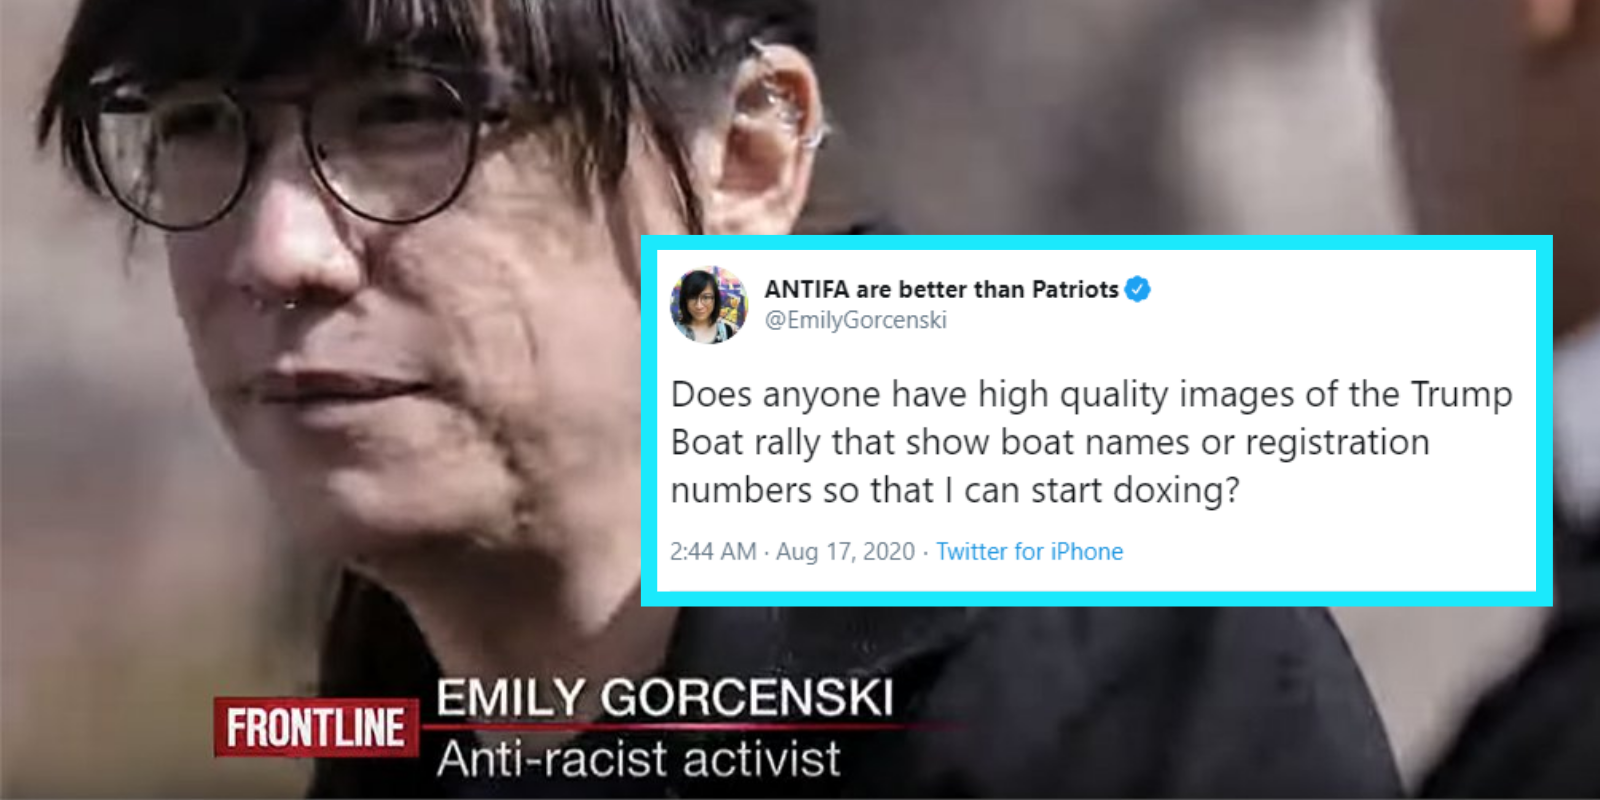 Notorious Antifa activist tries to dox Trump boat parade participants on Twitter